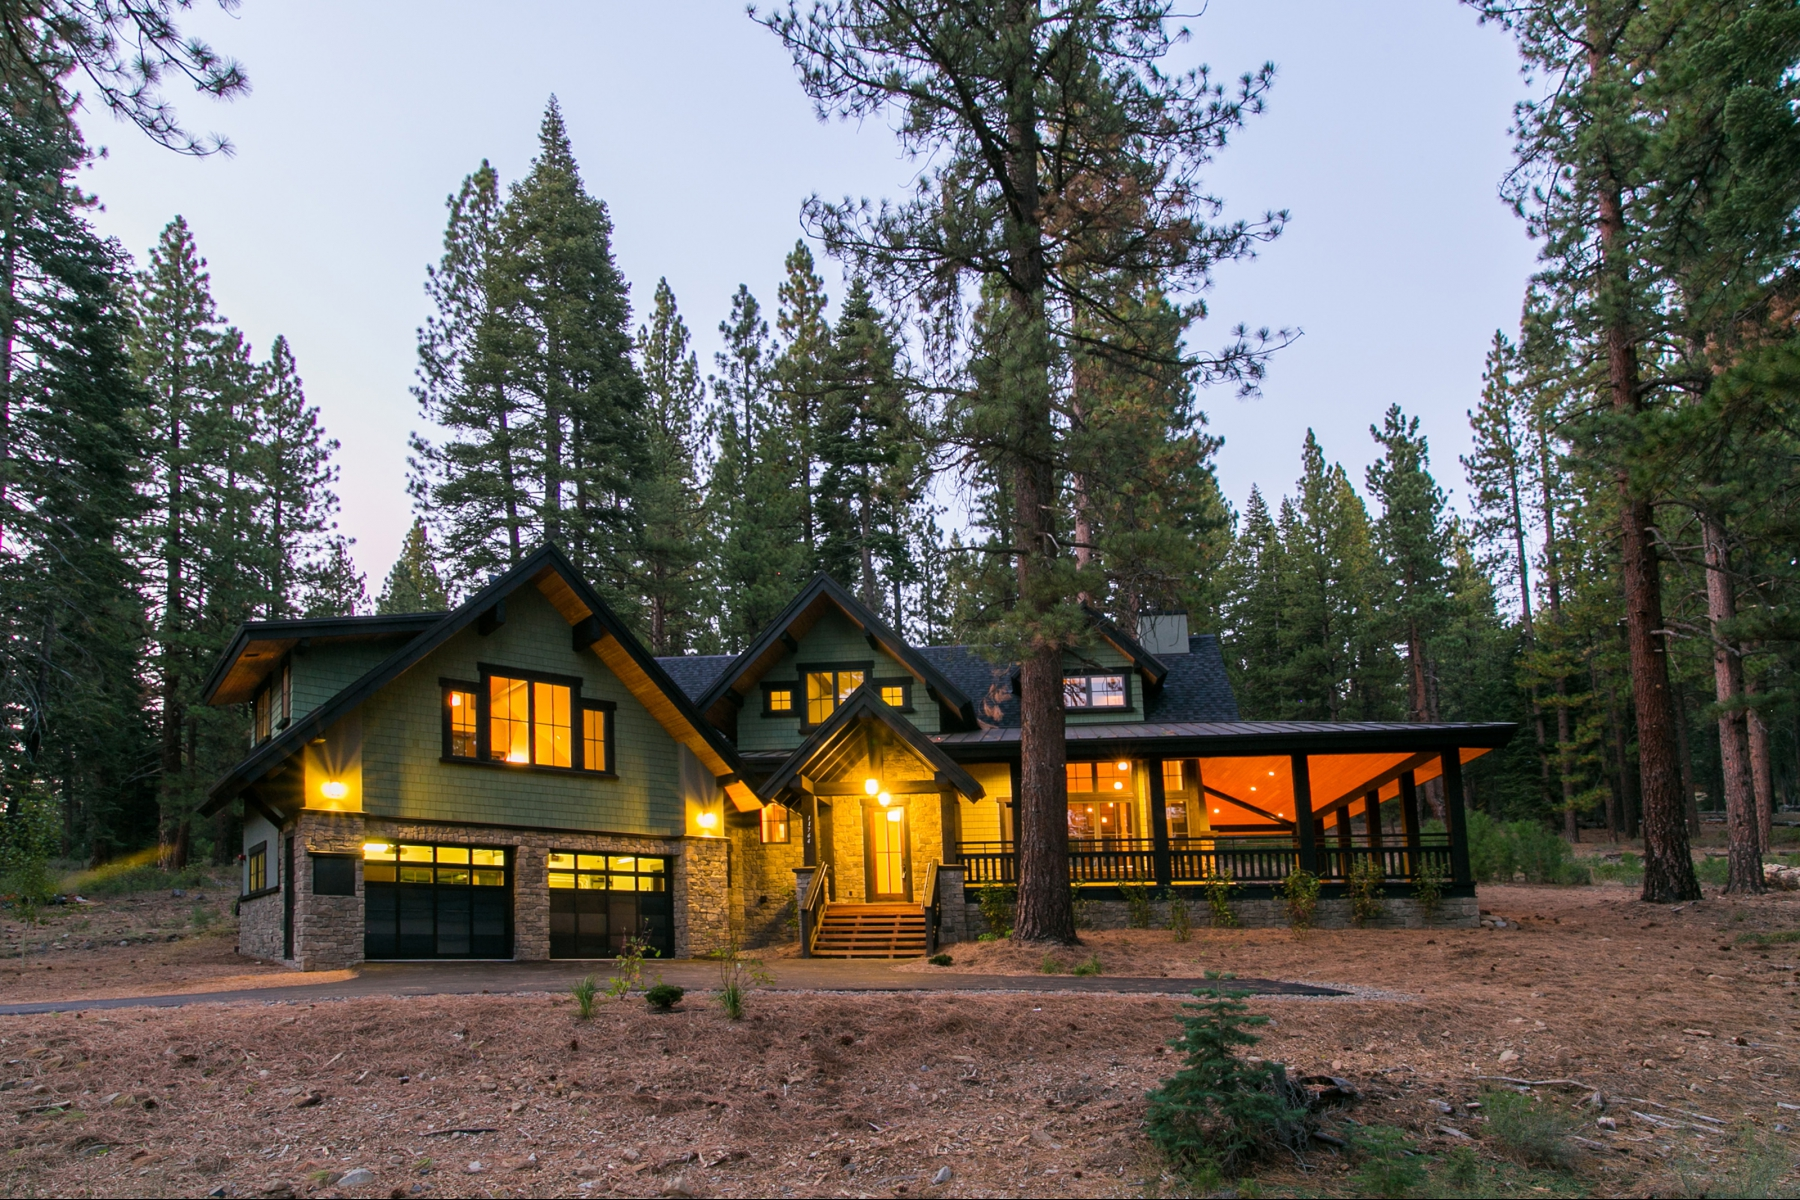 Single Family Home for Sale at 11764 Kelley Drive Truckee, California 96161 United States